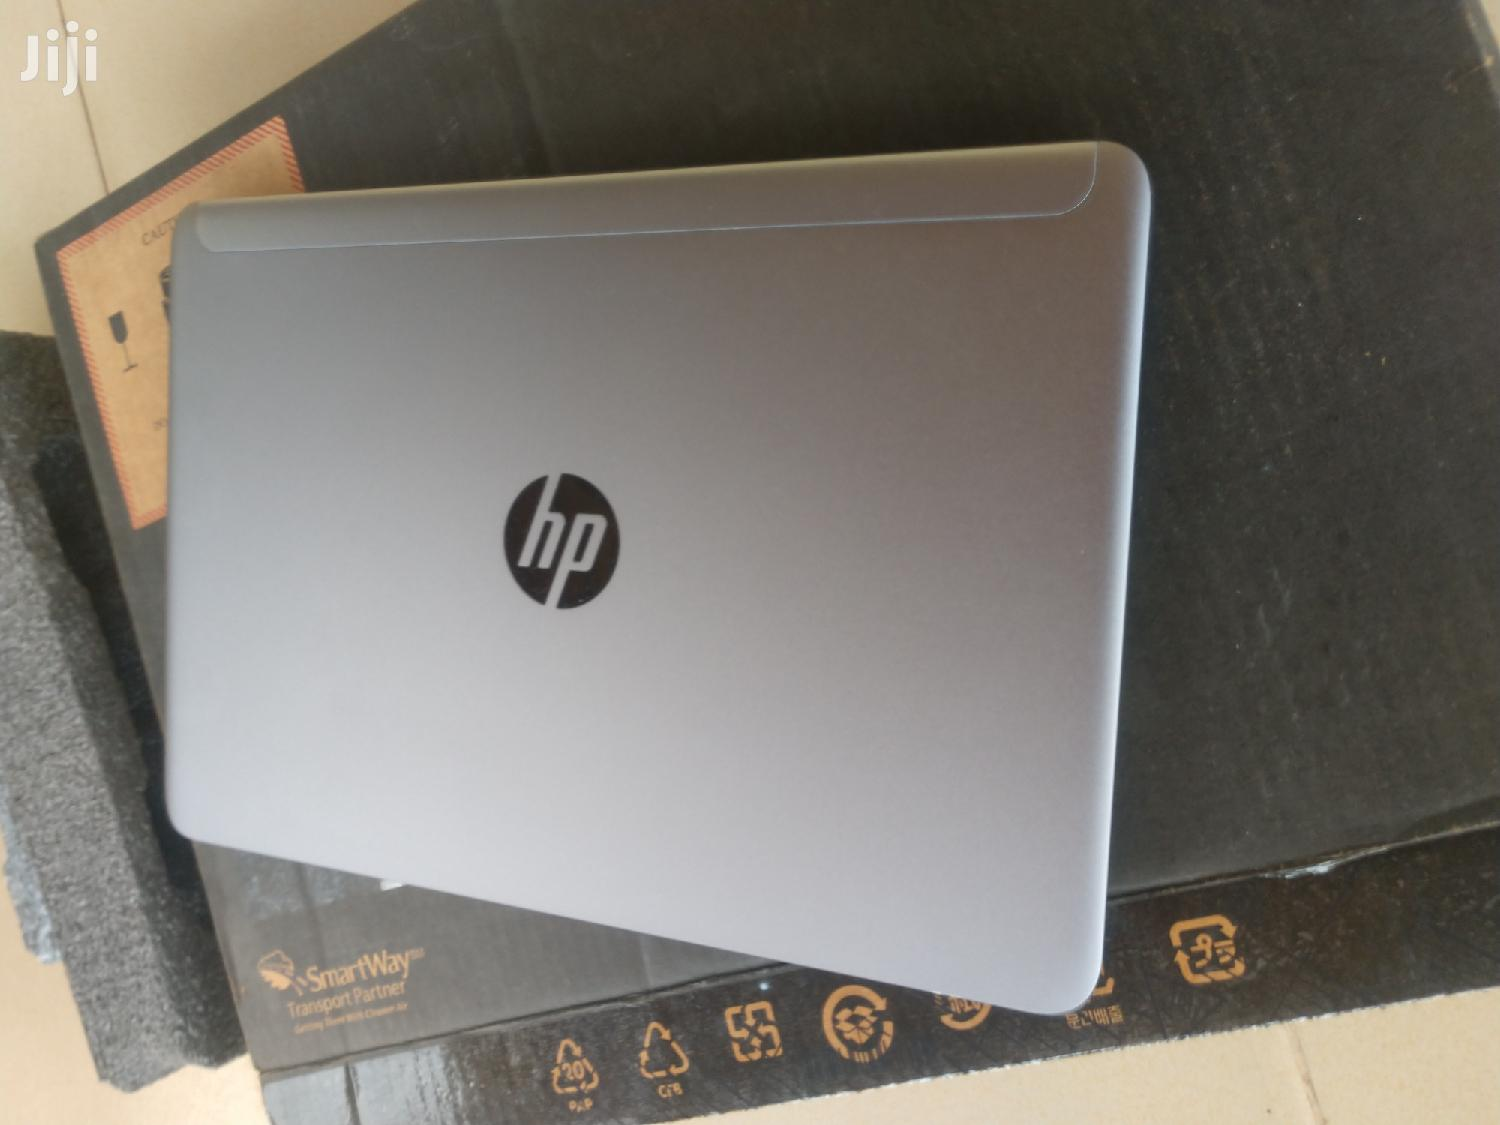 New HP EliteBook Folio 1040 G2 8GB Intel Core i5 SSHD (Hybrid) 256GB | Laptops & Computers for sale in Accra Metropolitan, Greater Accra, Ghana